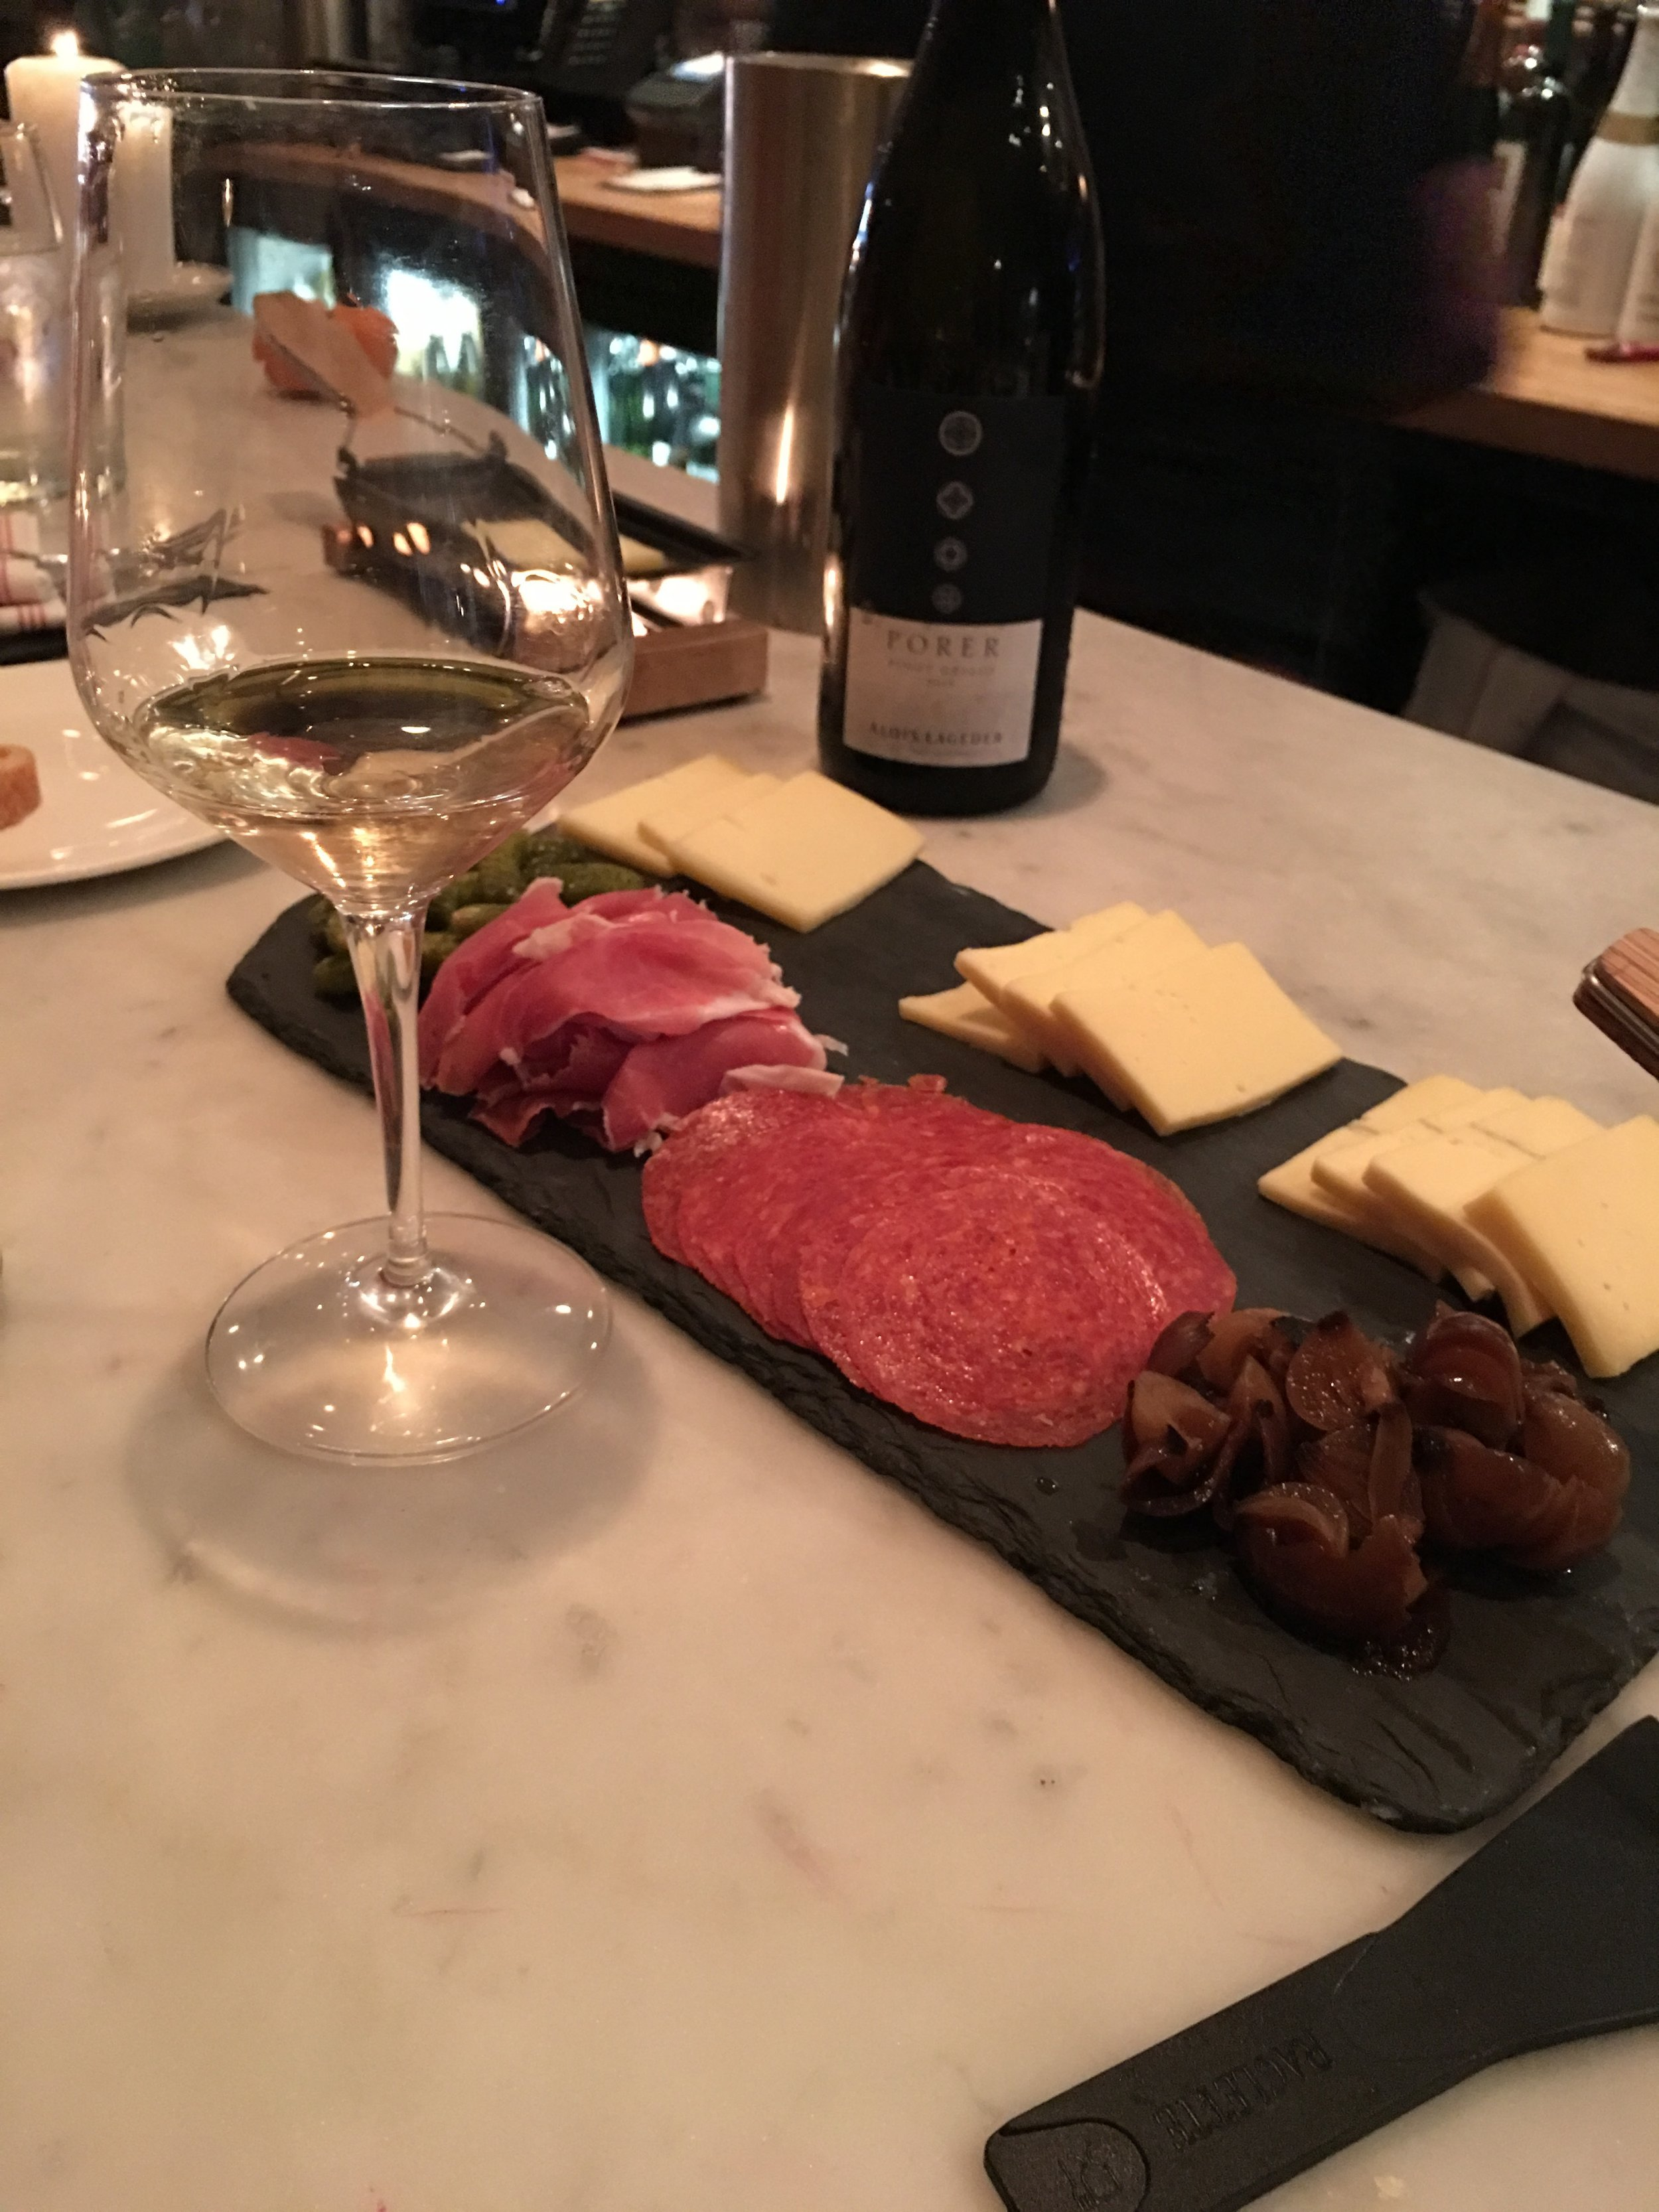 This was at Murray's Cheese in NYC. It's all the fixings for a raclette. We'll call this the  N-Y-Cheese Plate.